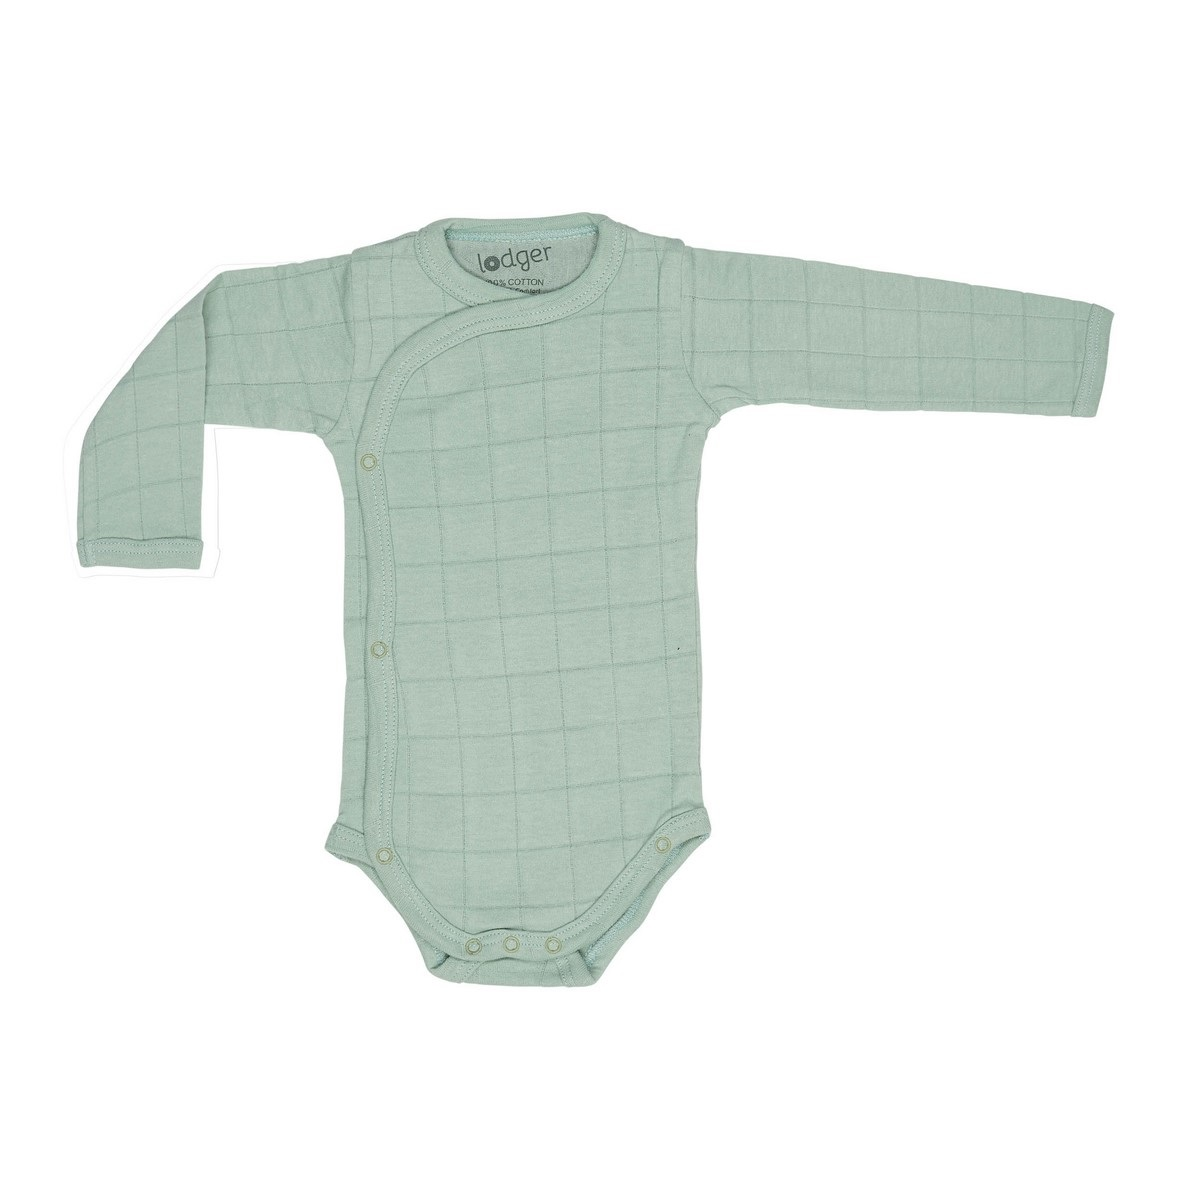 LODGER Body DR. Solid Silt Green vel. 62